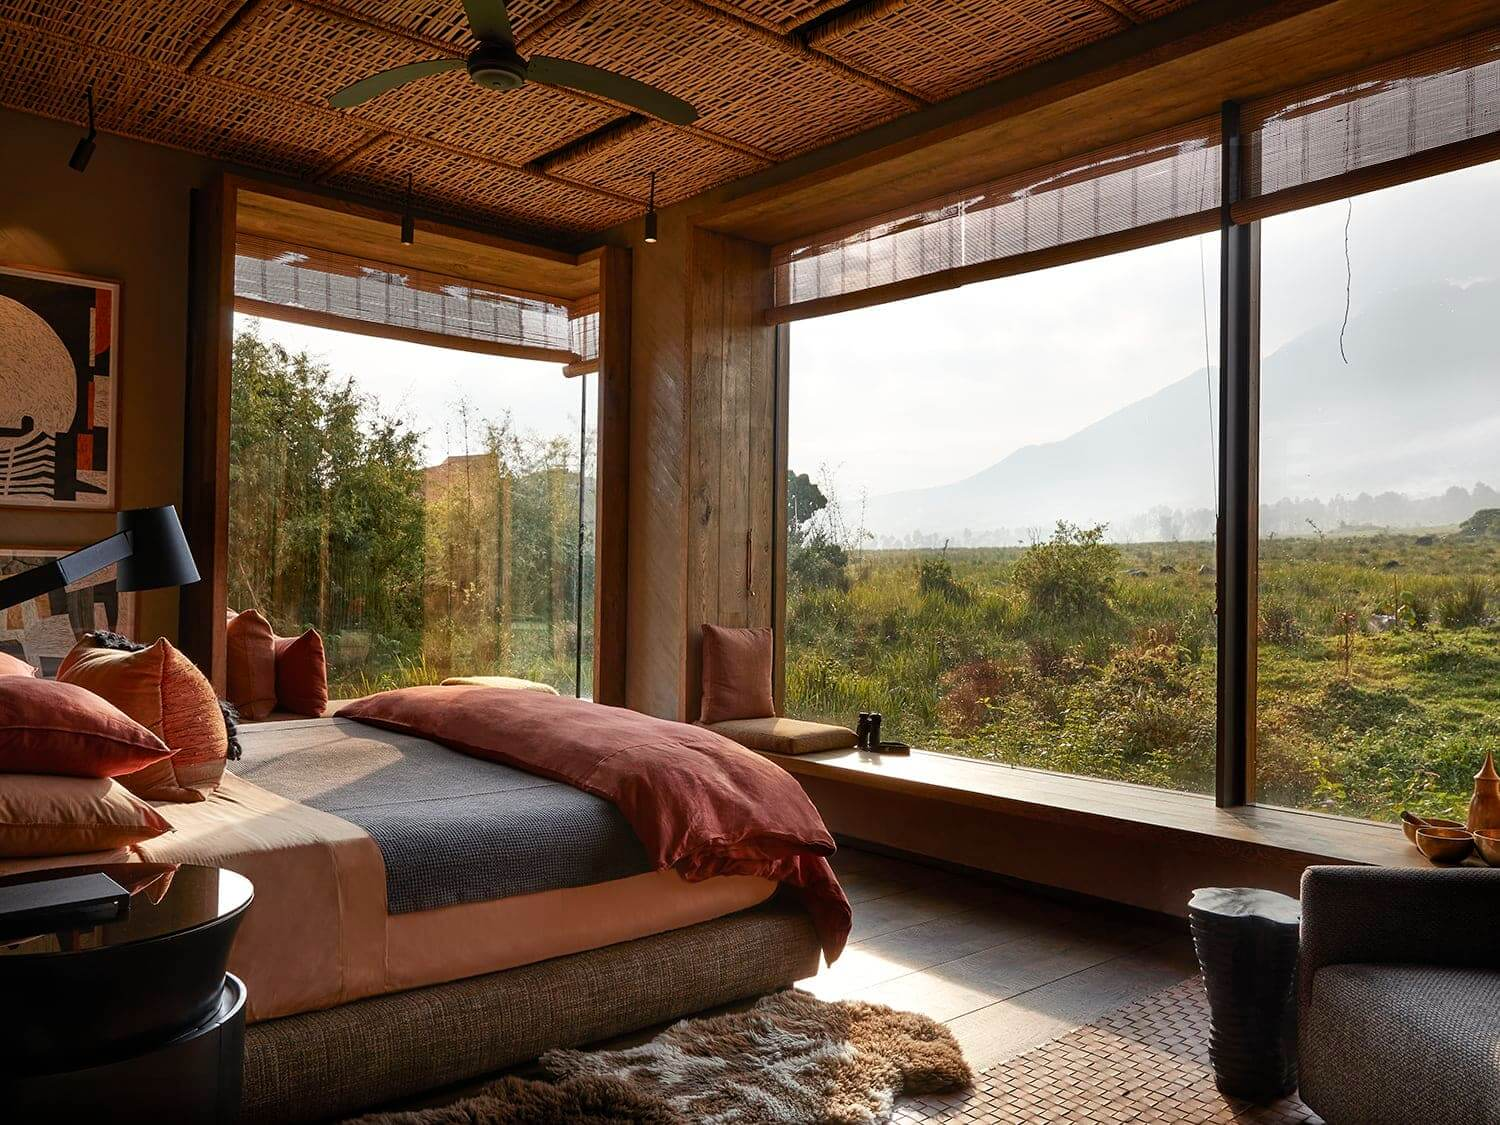 Beautiful bedroom with woven ceilings and huge plate glass windows overlooking a distant volcano at Singita Kwitonda, Rwanda. Photo by Elsa Young Photography.